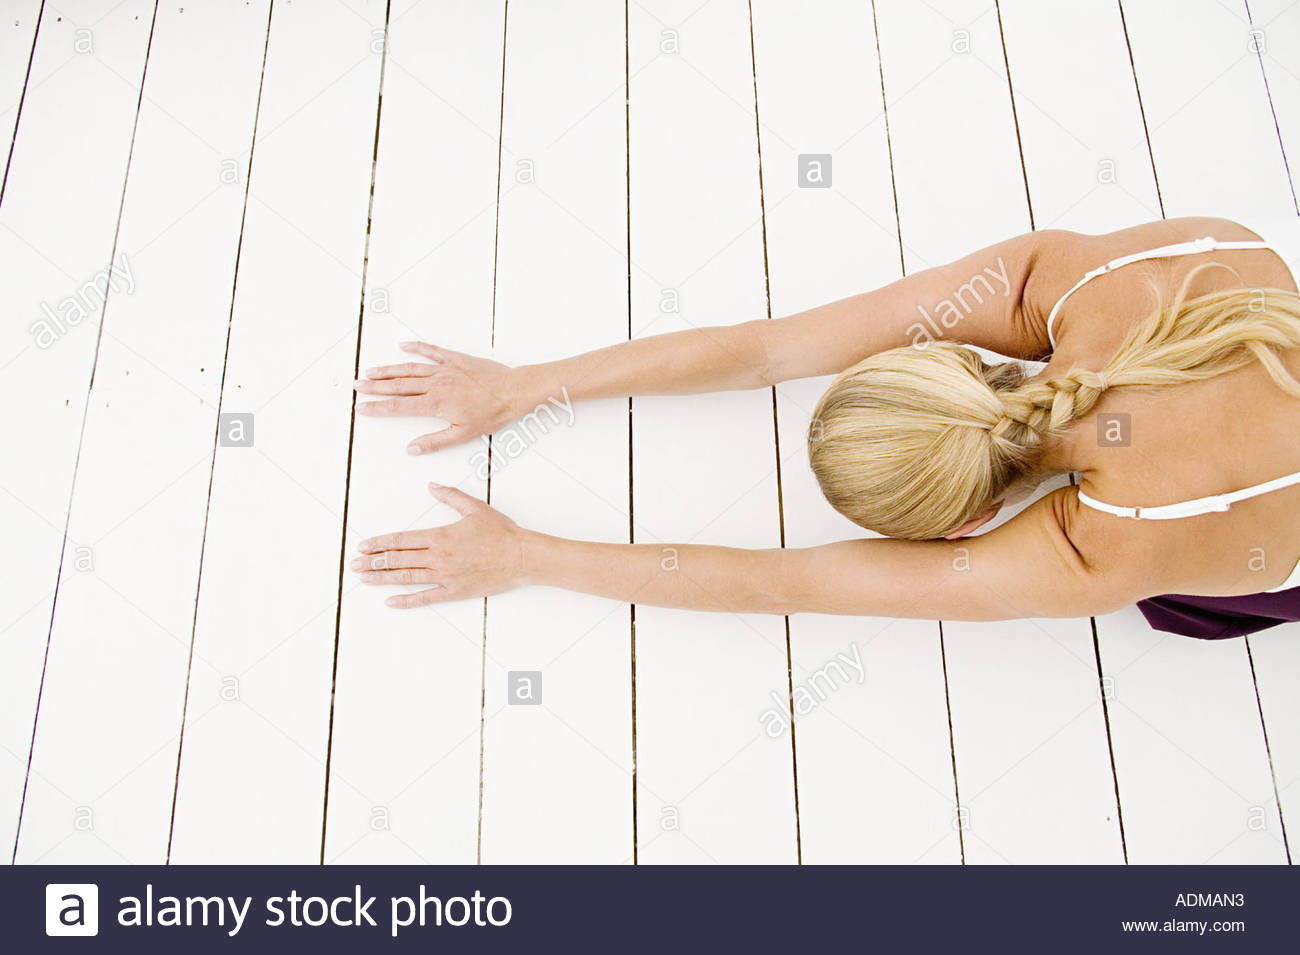 A woman in child pose - Stock Image